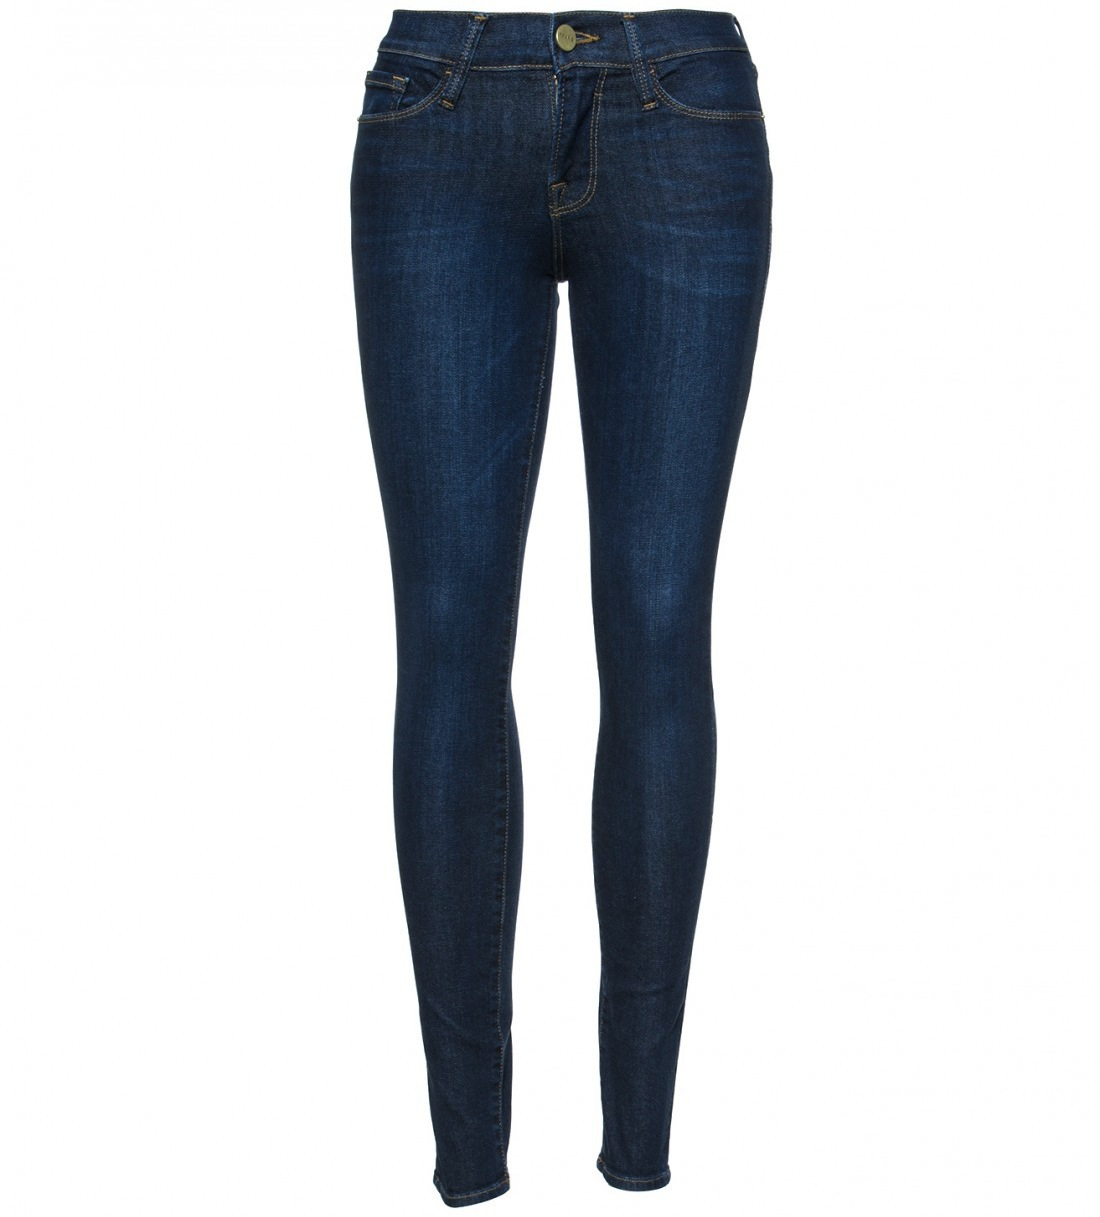 frame denim le skinny jean in marshall